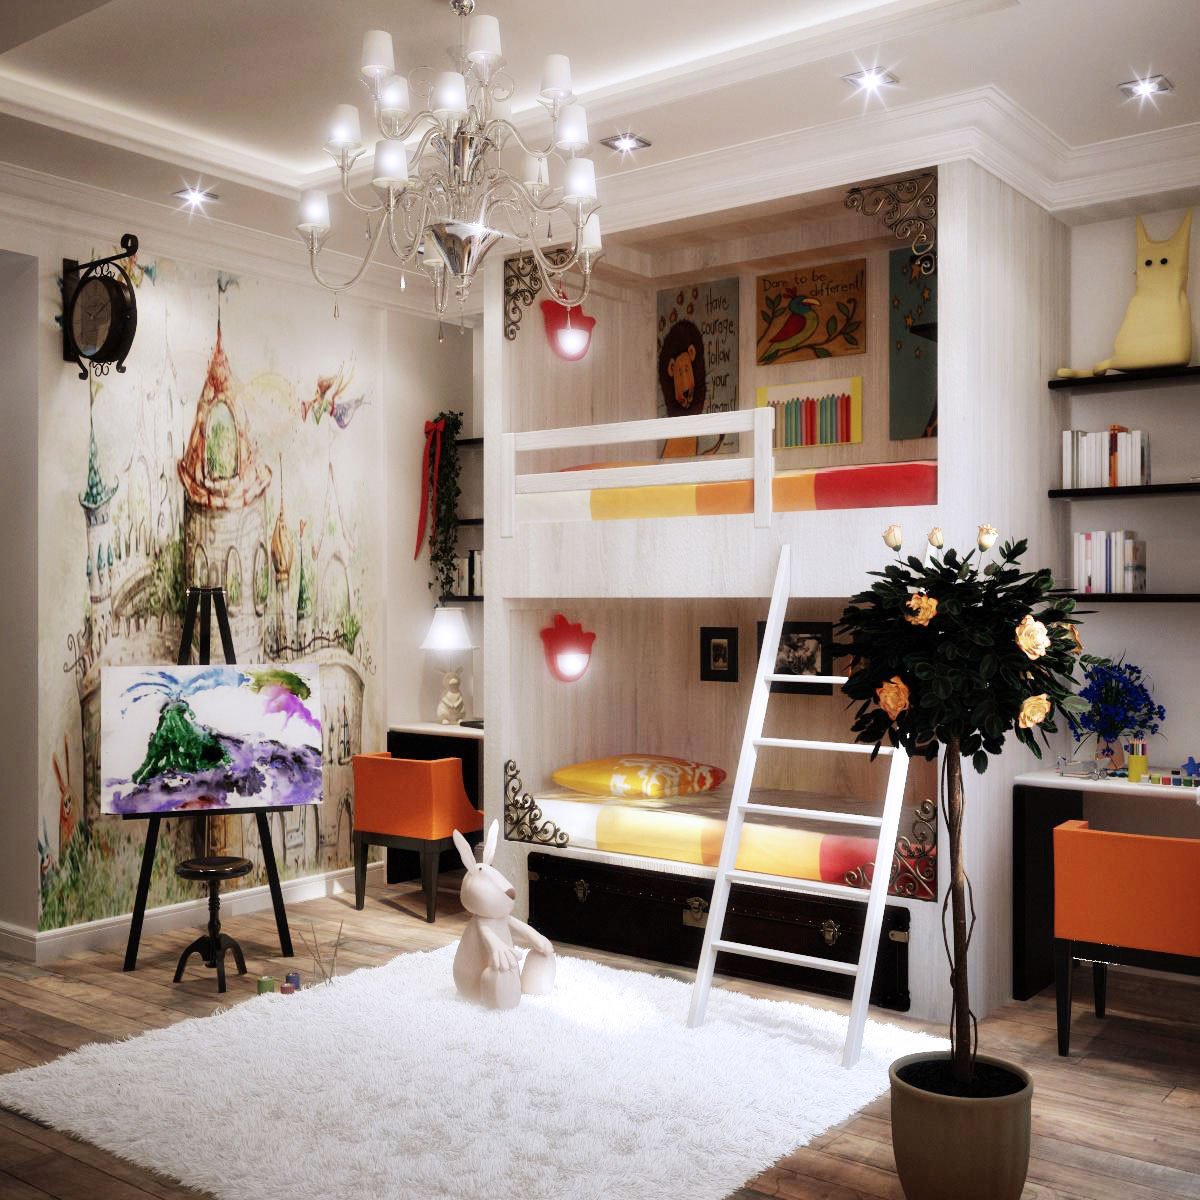 Room Decor Ideas for Teens Beautiful Fascinating Design Ideas for A Teen's Bedroom